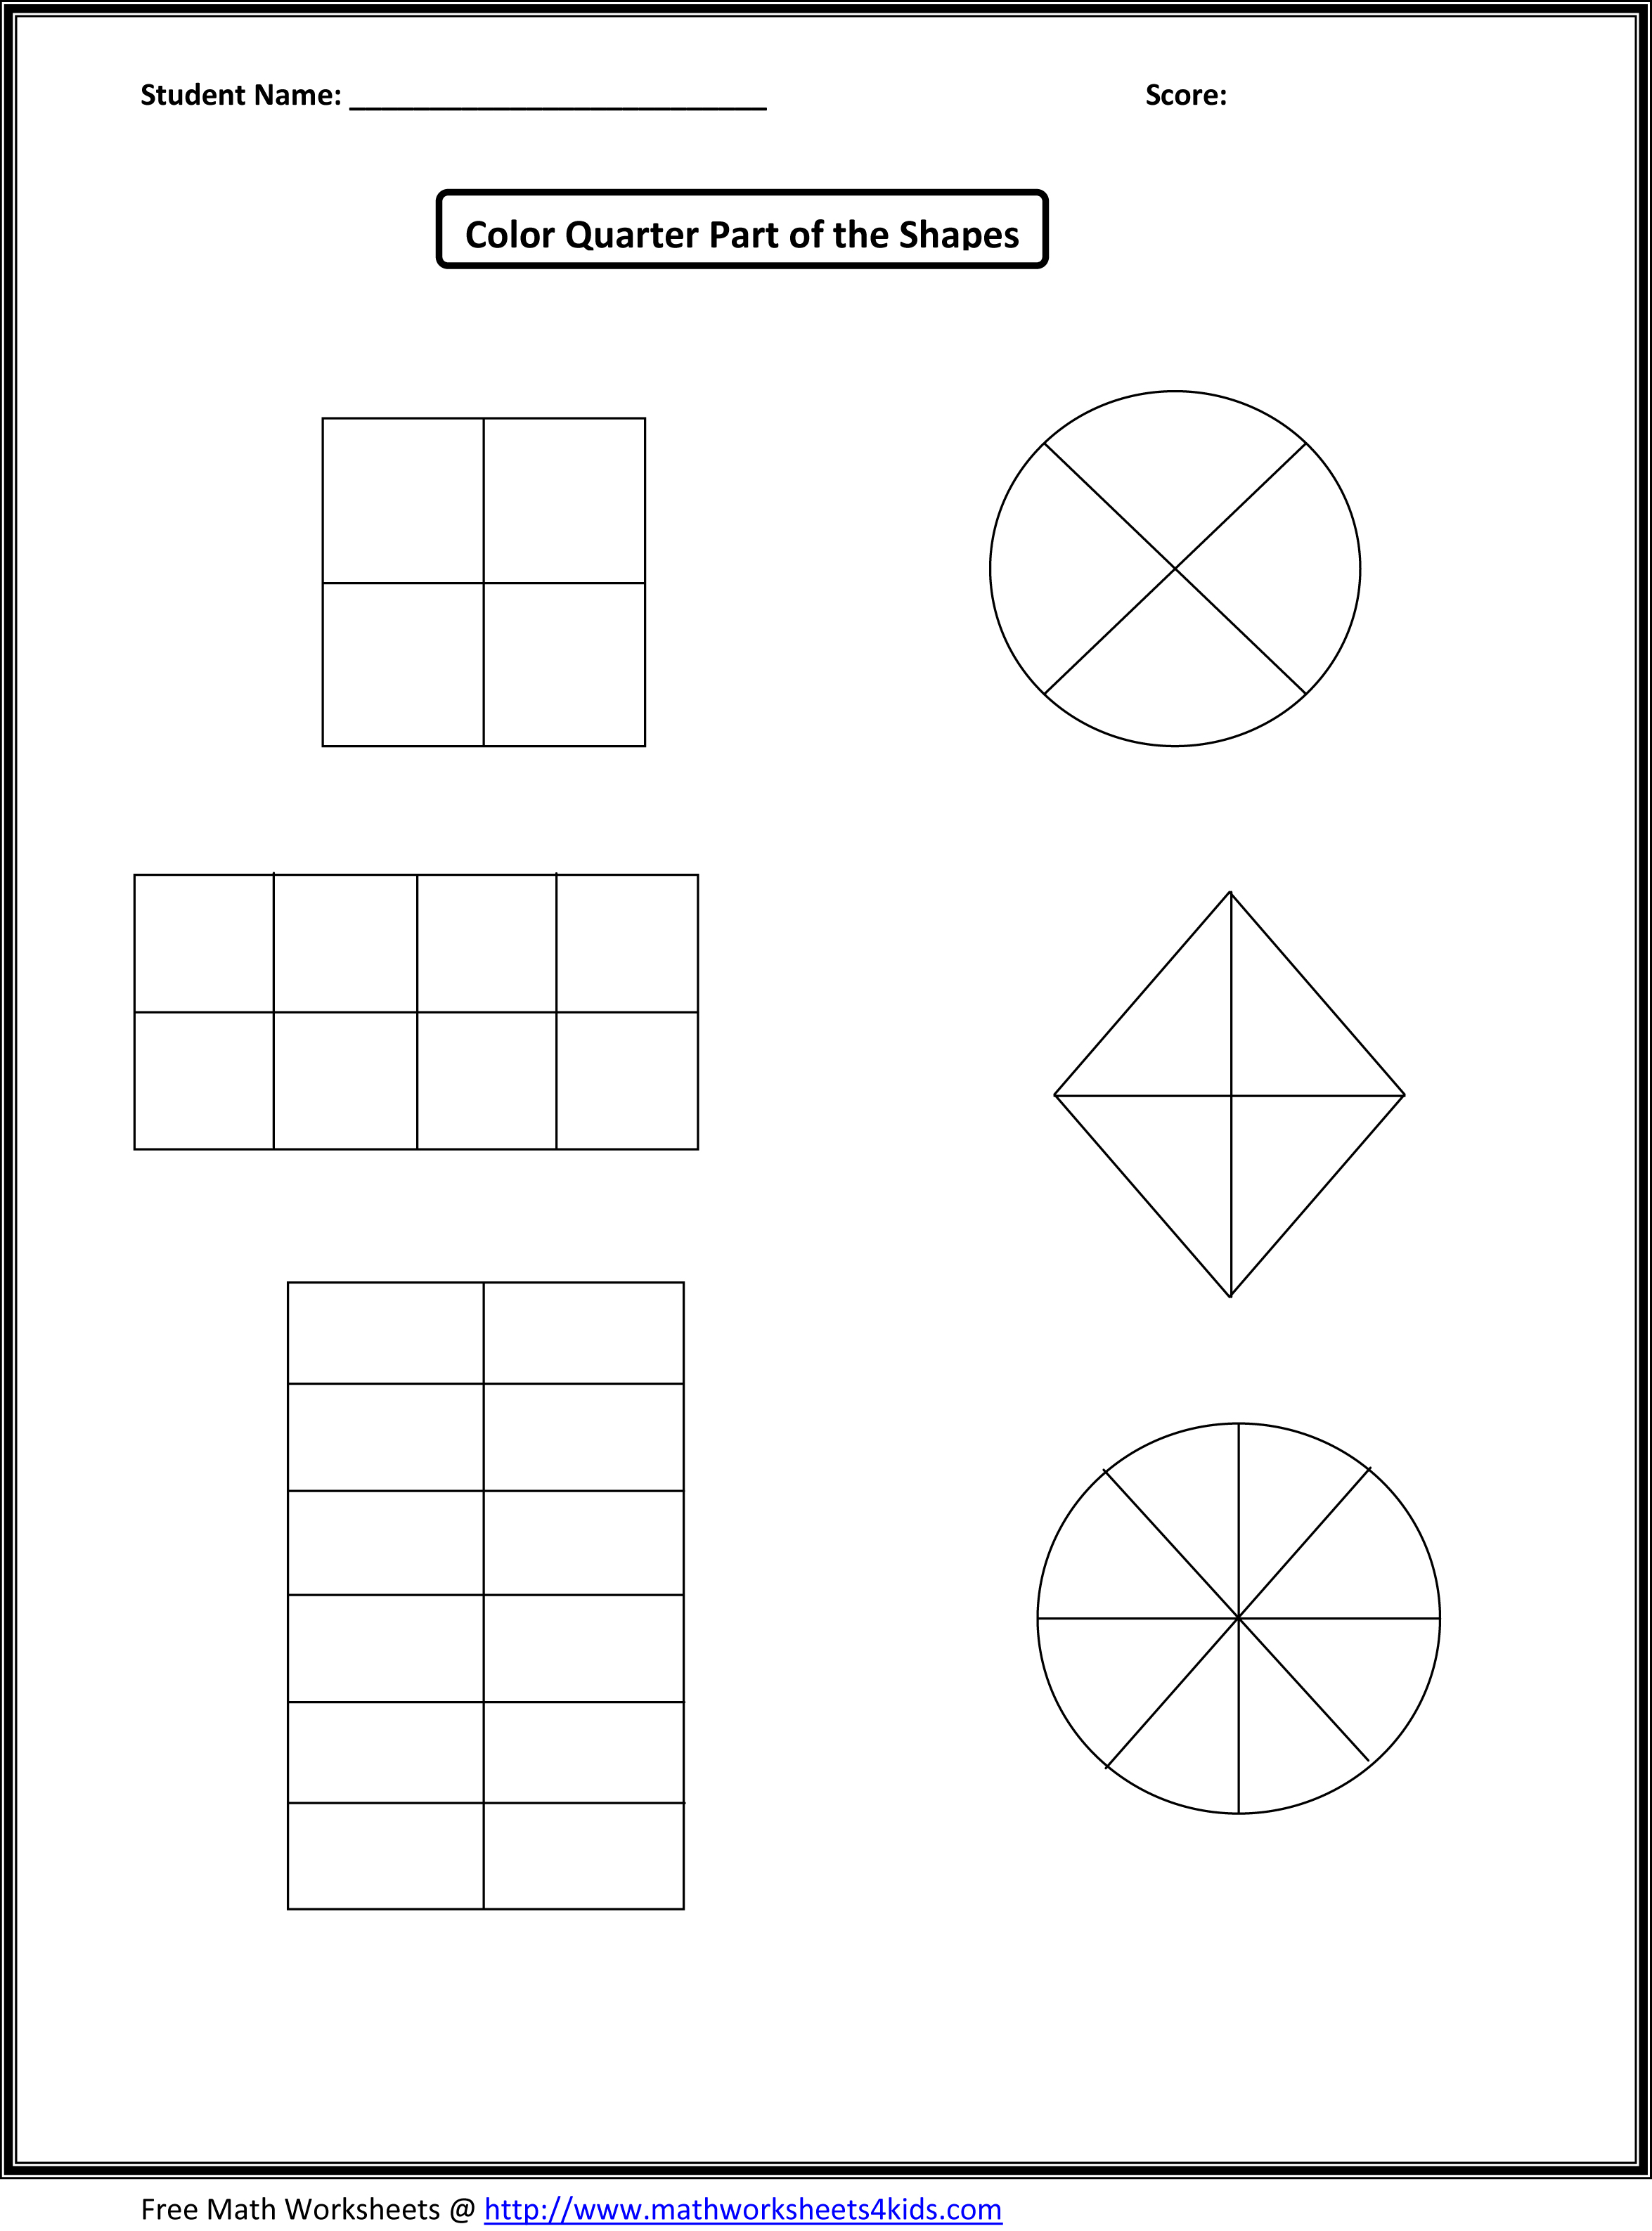 Worksheet 10541492 Shaded Fraction Worksheets Fraction FREE – Fractions Worksheets Free